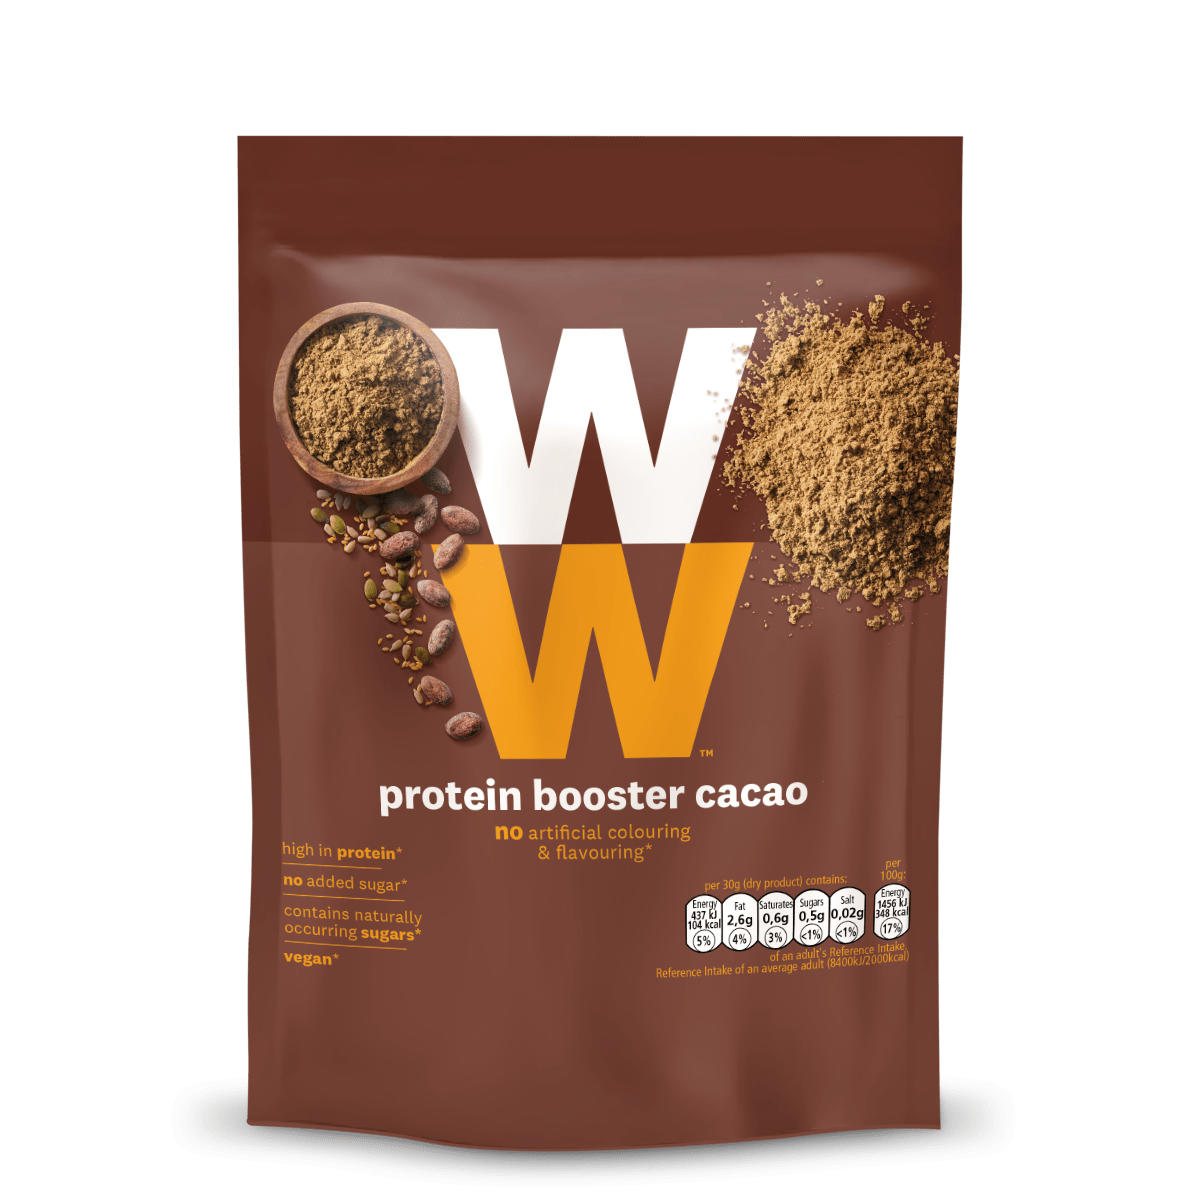 WW Protein Powder Cacao, high in protein, use for cooking, toppings or smoothies, no added sugar, 2 SmartPoints per portion, suitable for vegans